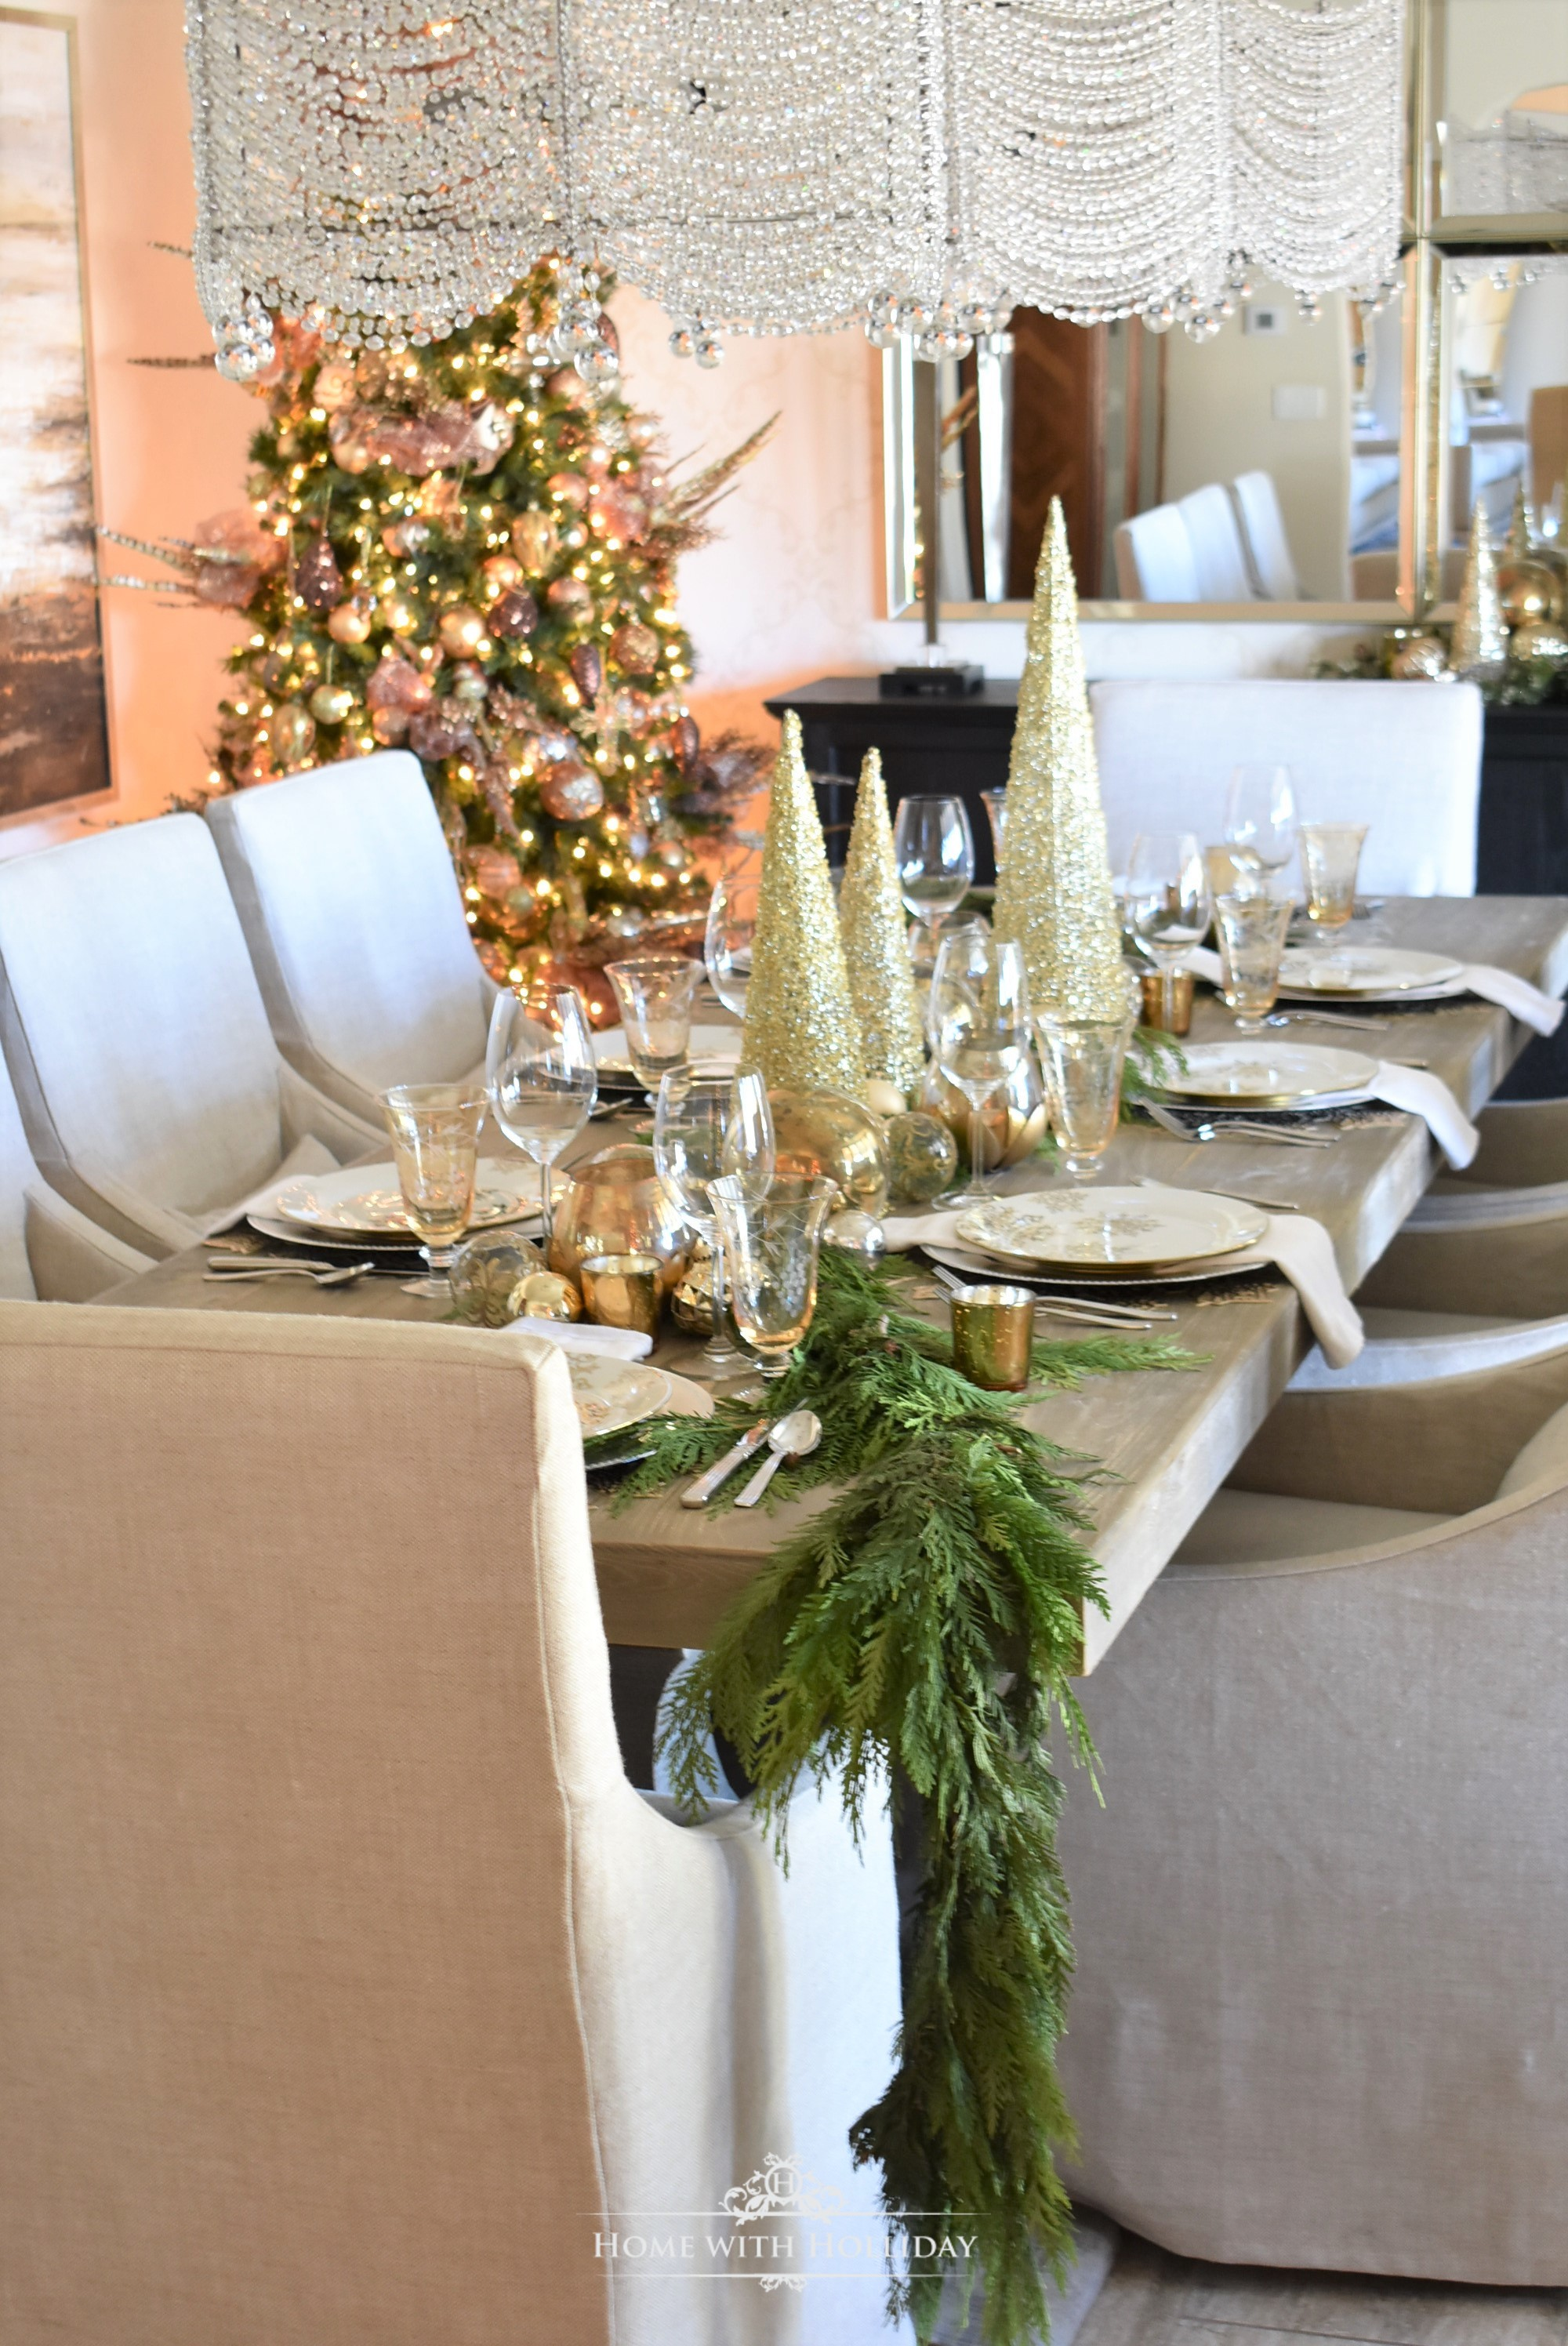 My Christmas Home Tour - Centerpiece for a Gold and Silver Snowflake Christmas Table Setting - Home with Holliday